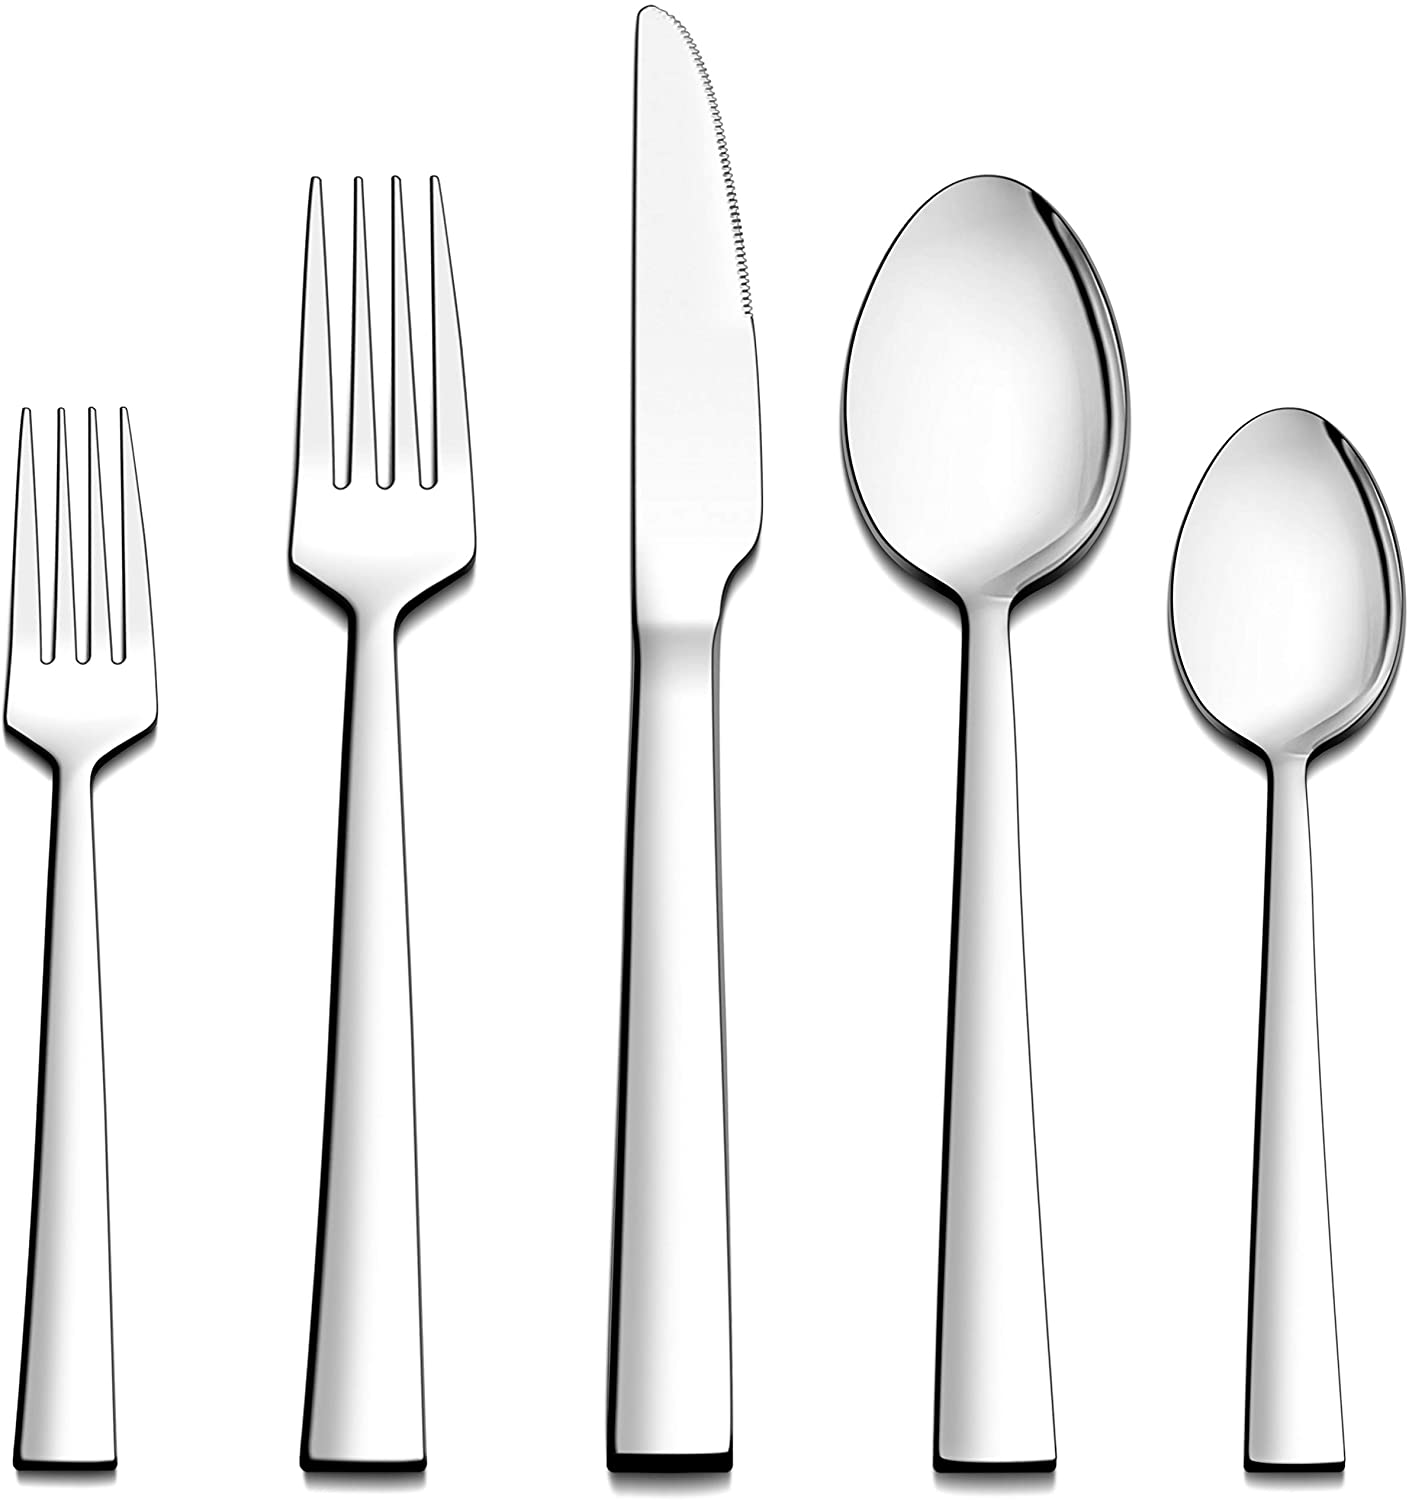 LIANYU 60-Piece Silverware Set, Stainless Steel Square Flatware Cutlery Set for 12, Eating Utensils Tableware, Mirror Finish, Dishwasher Safe